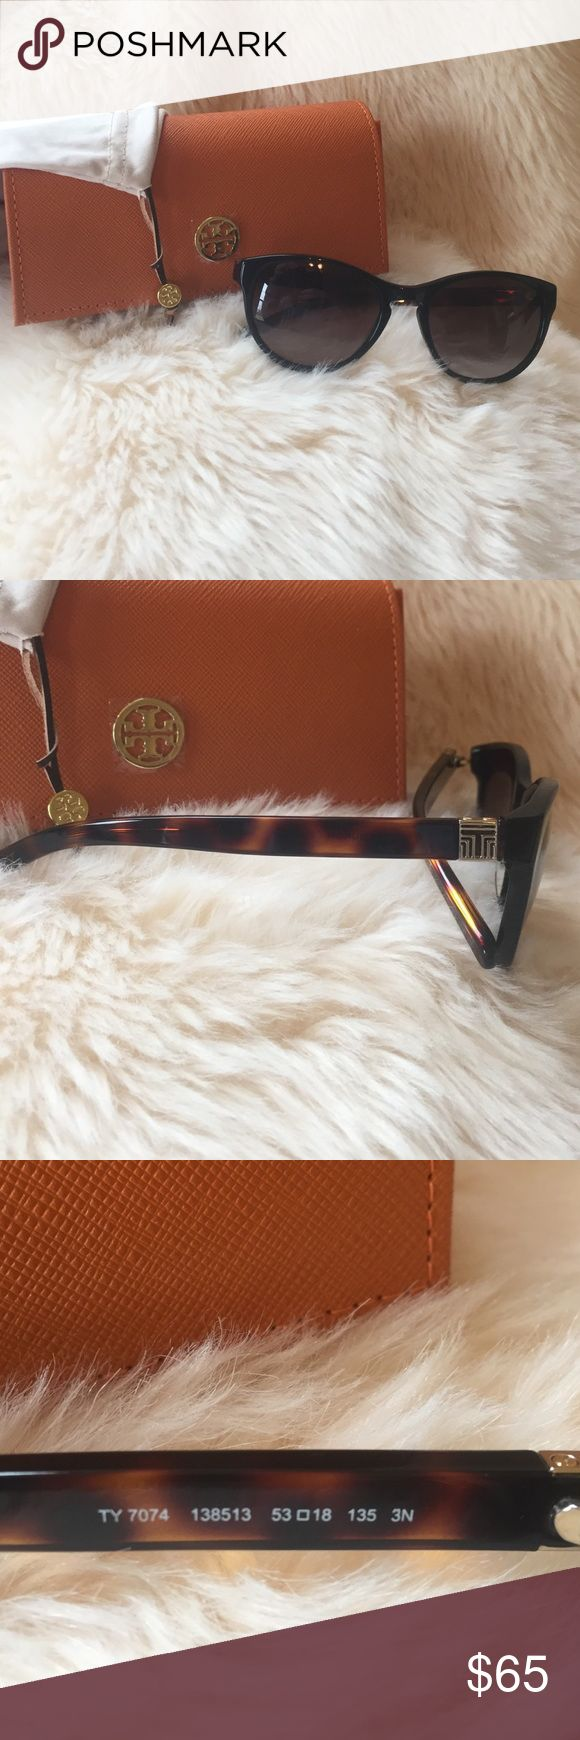 Tory Burch Sunglasses Tory Burch black and tortoise sunglasses. Like new conditions. No flaws. Comes with case and pouch. Open to offers :) Tory Burch Accessories Sunglasses